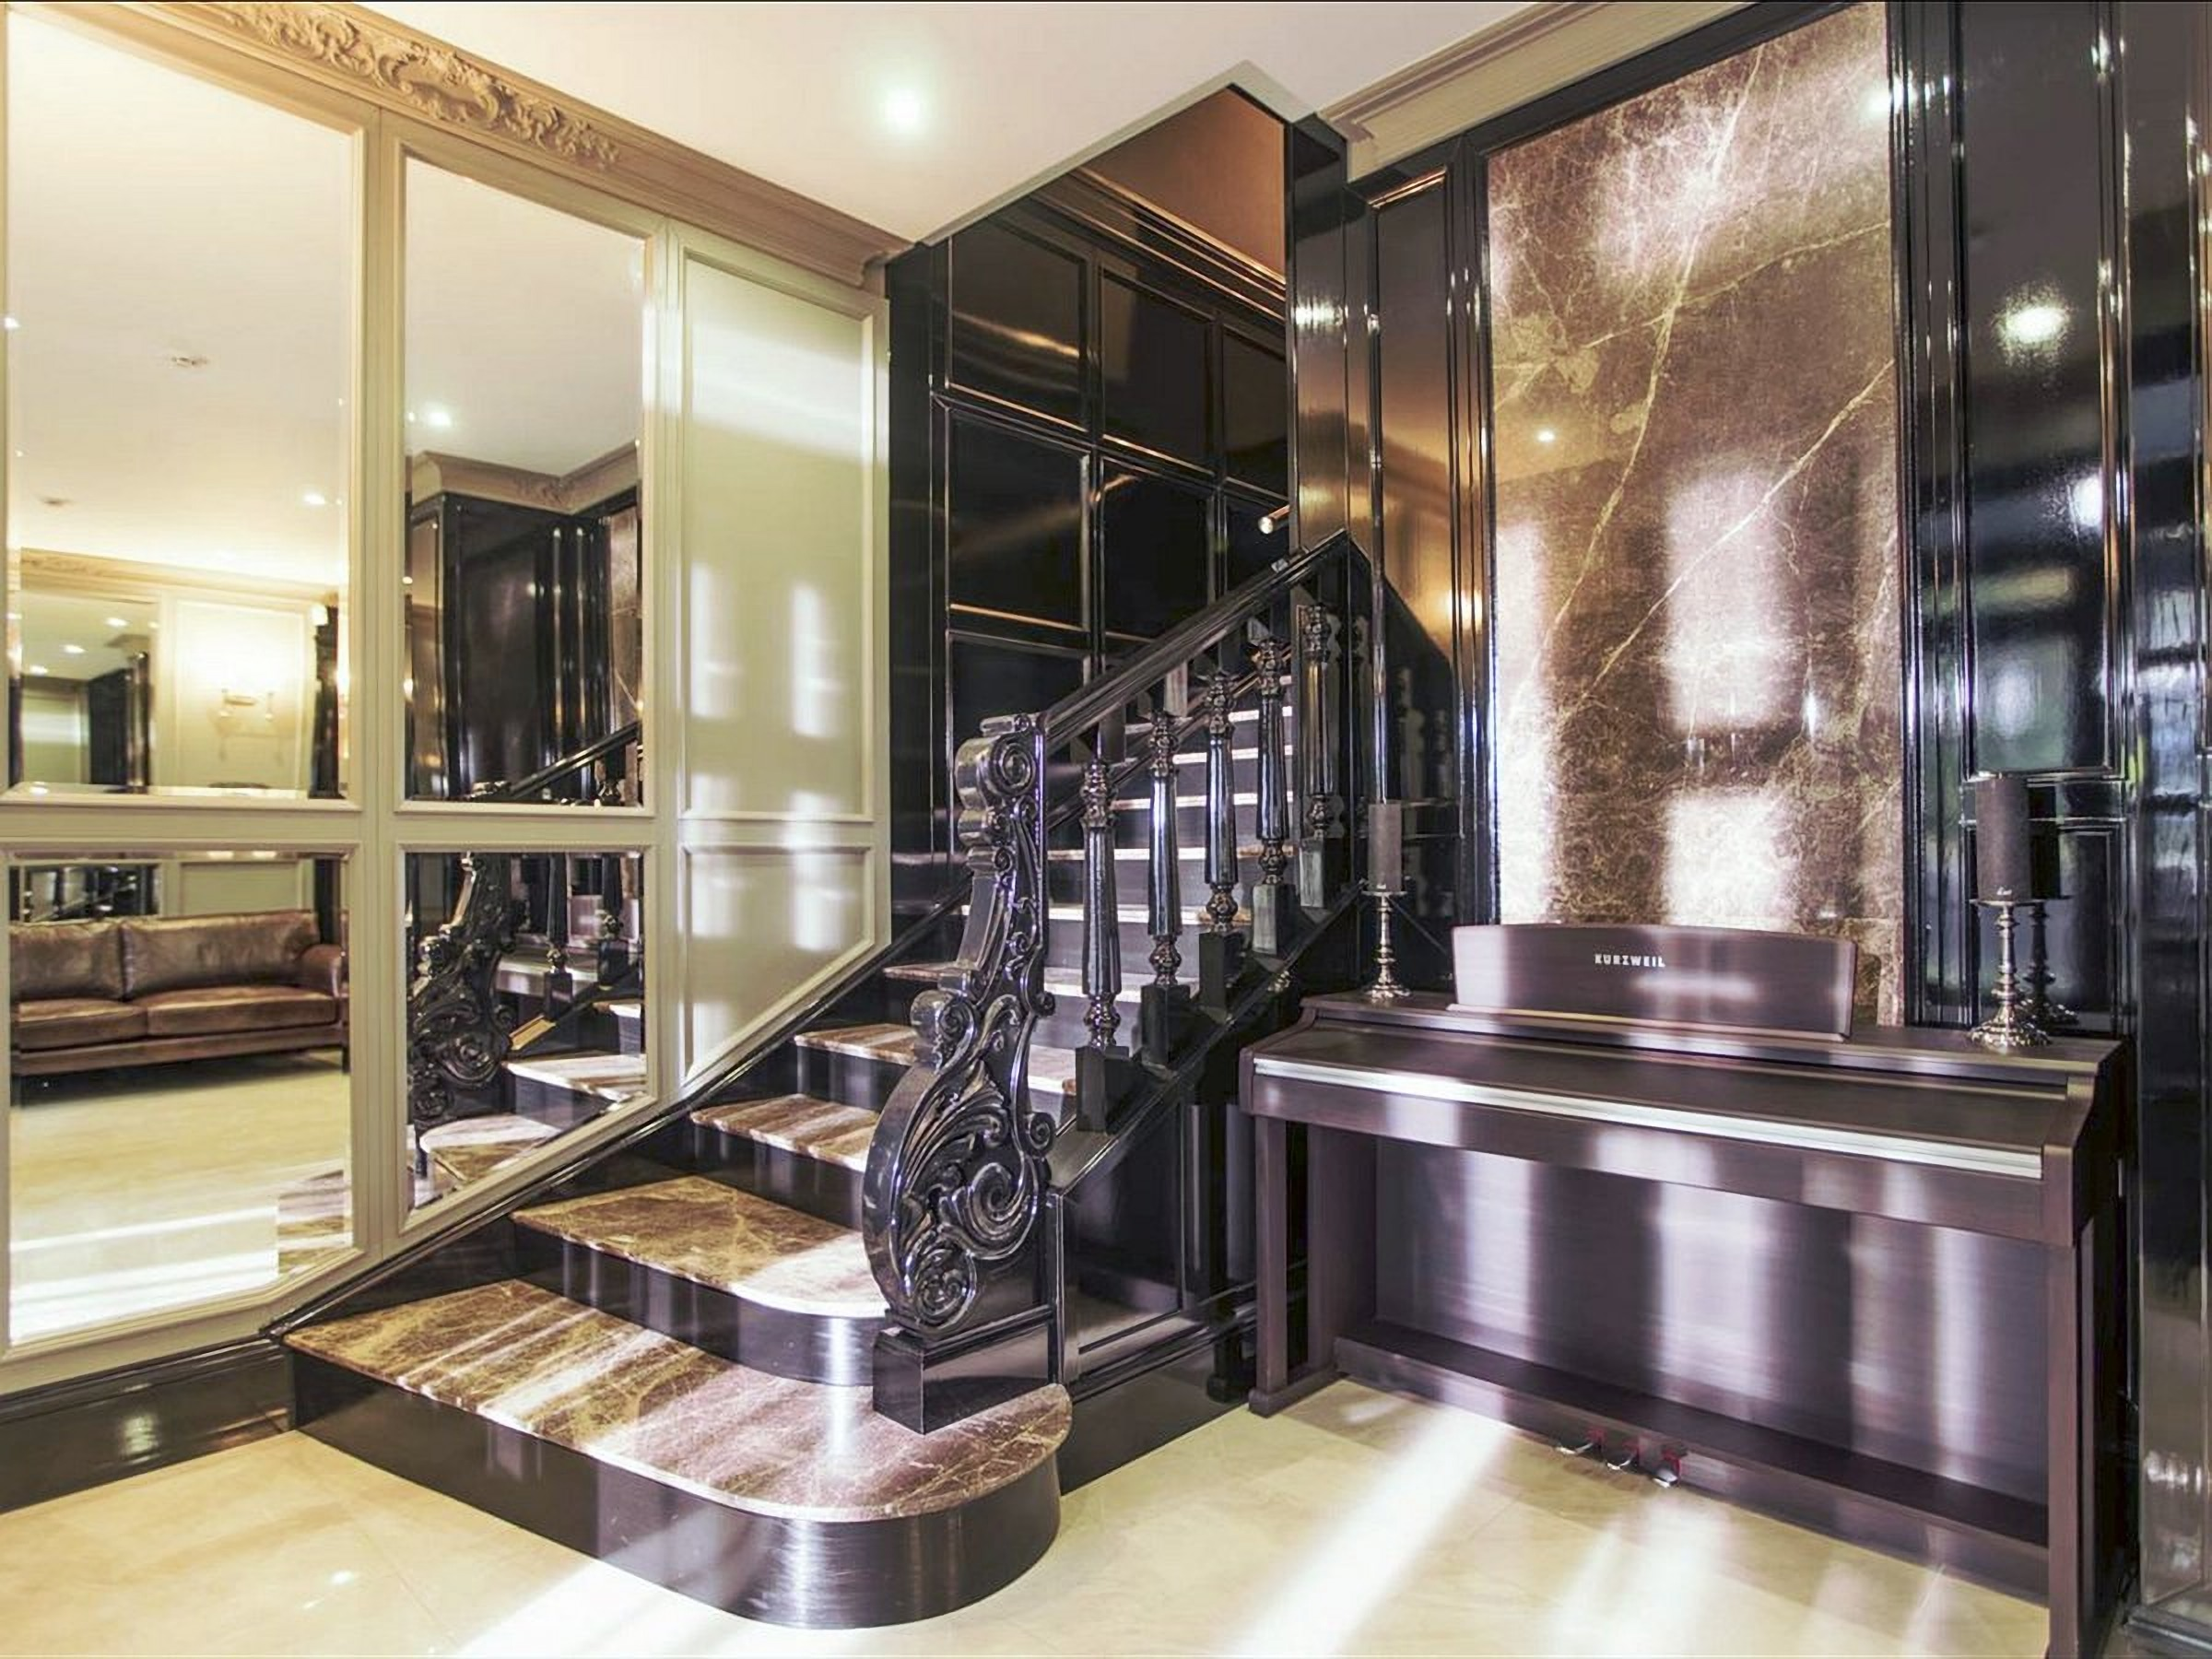 Stairs at the Wall Street Hotel Odessa Ukraine